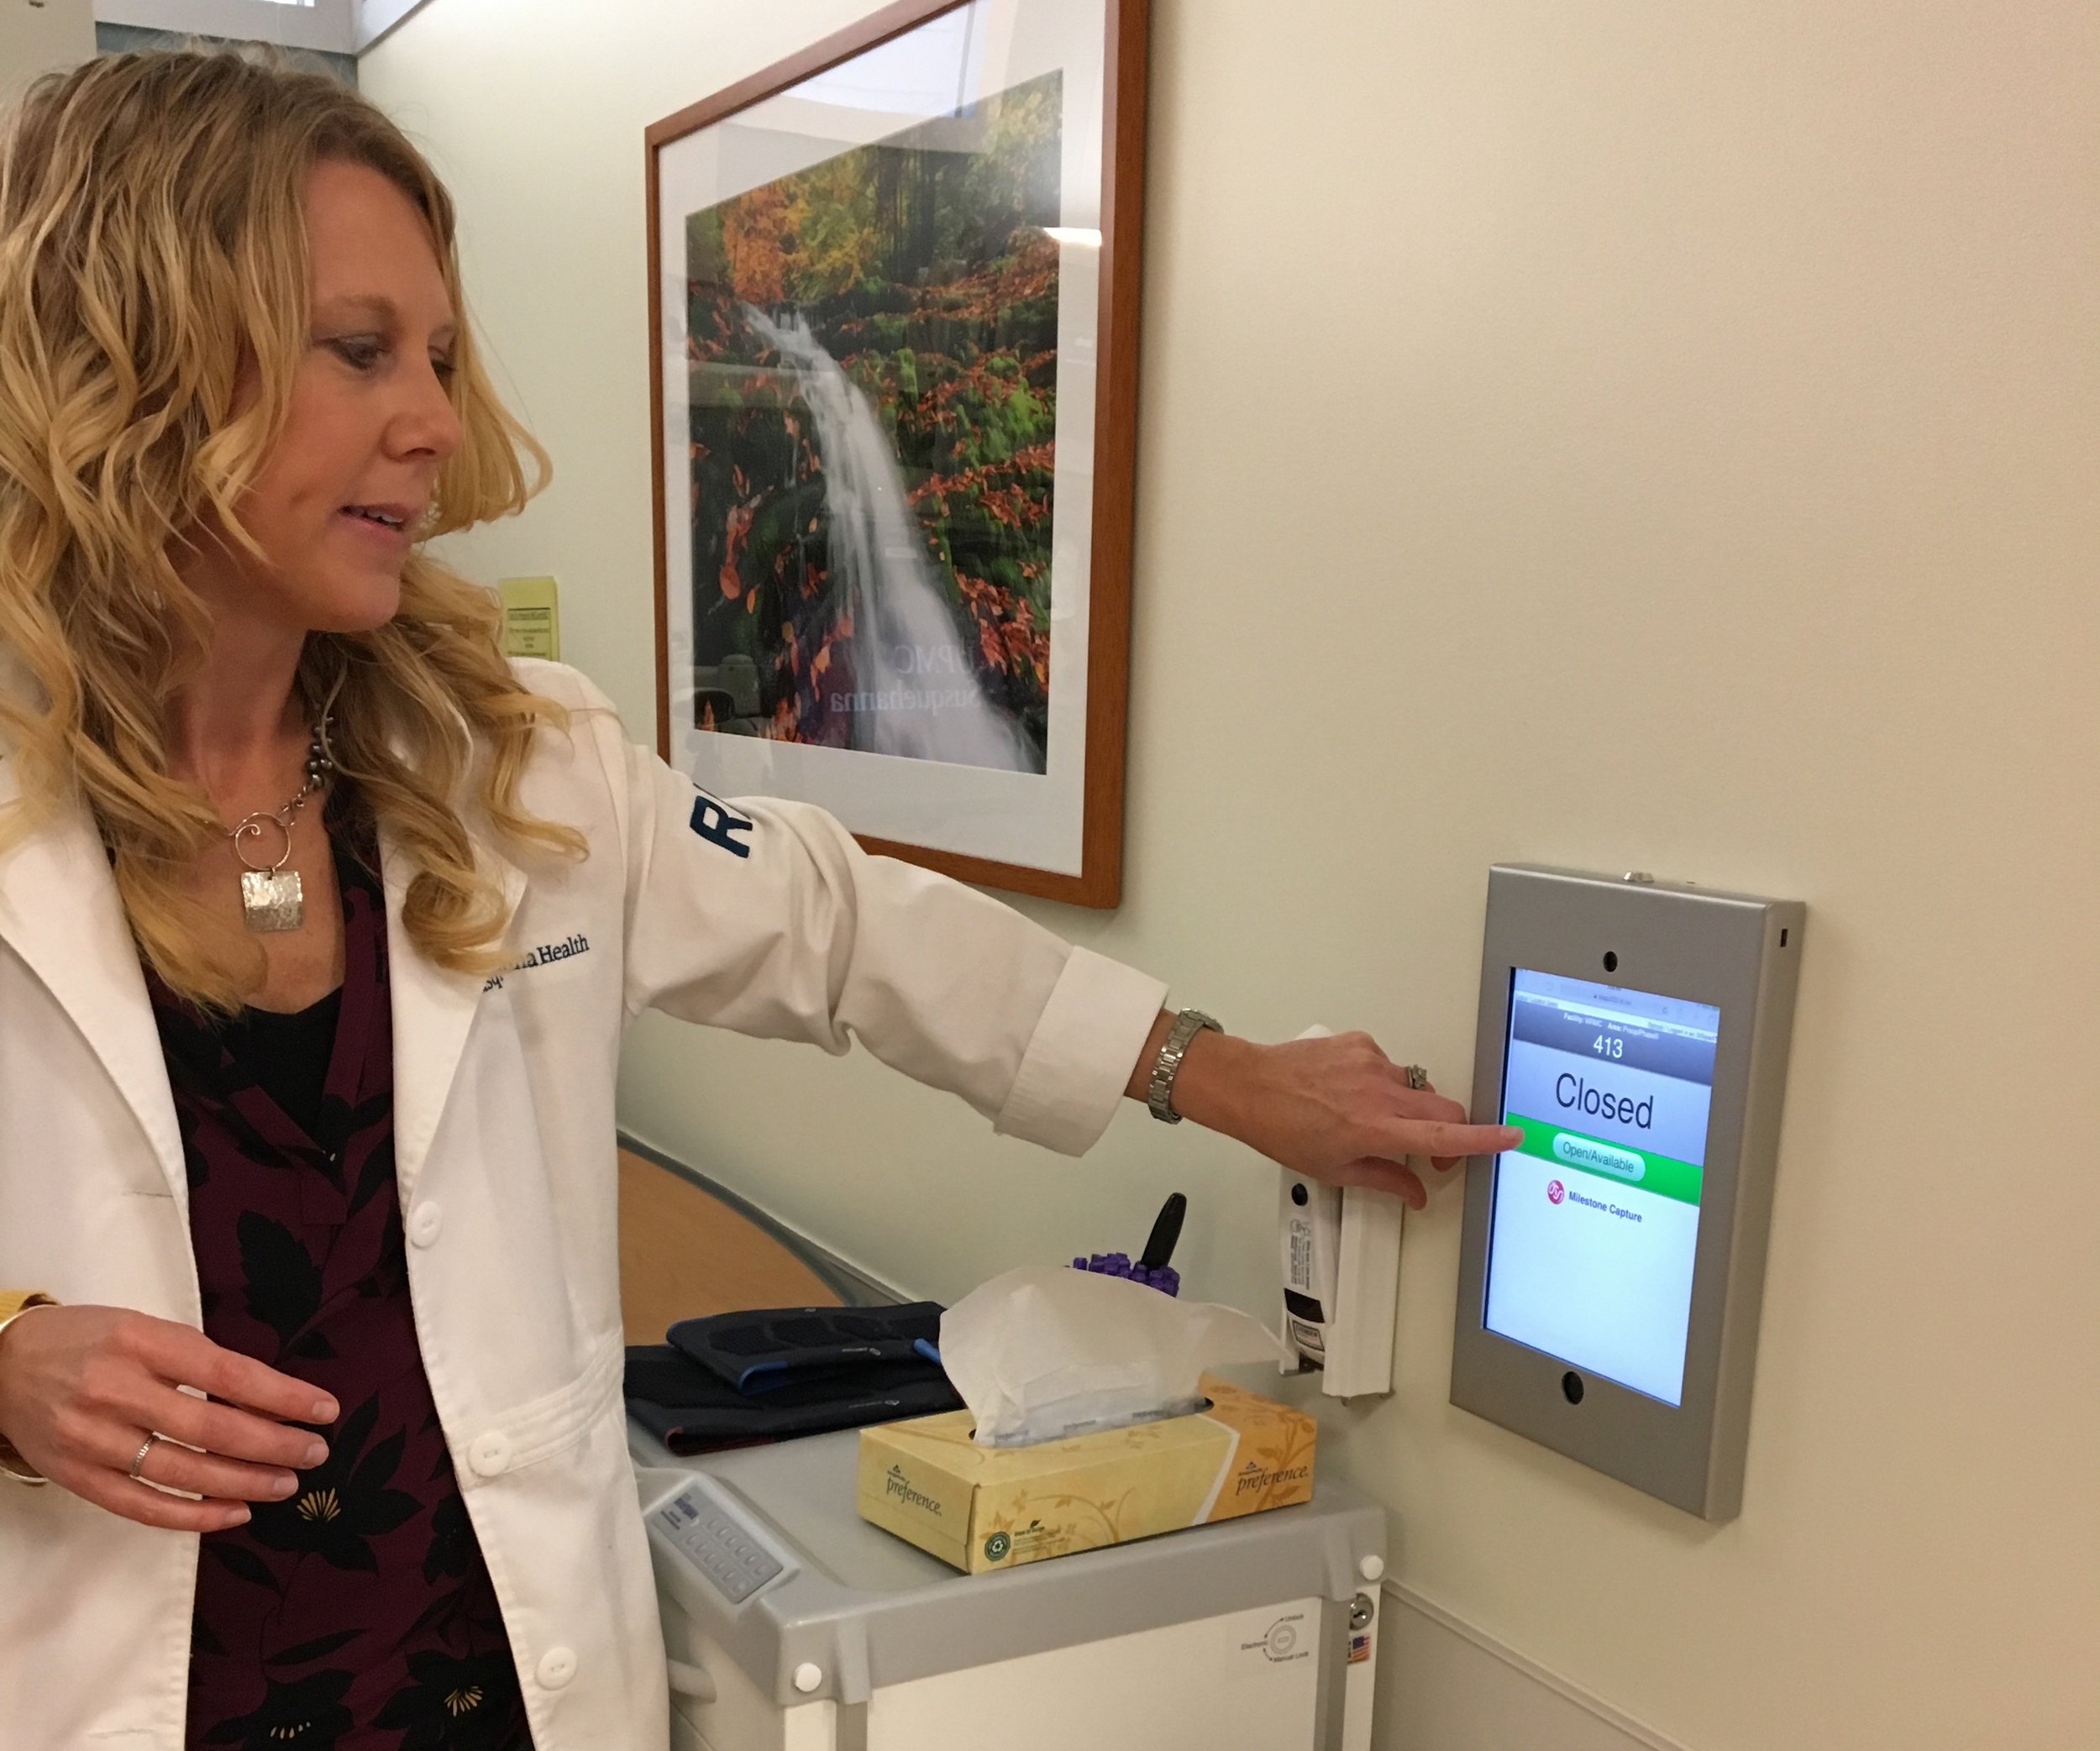 Surgery Center and Extended Care Unit Patient Care Manager Deanna Shamsie, RN, BSN, demonstrates the use of the iPad on the unit.